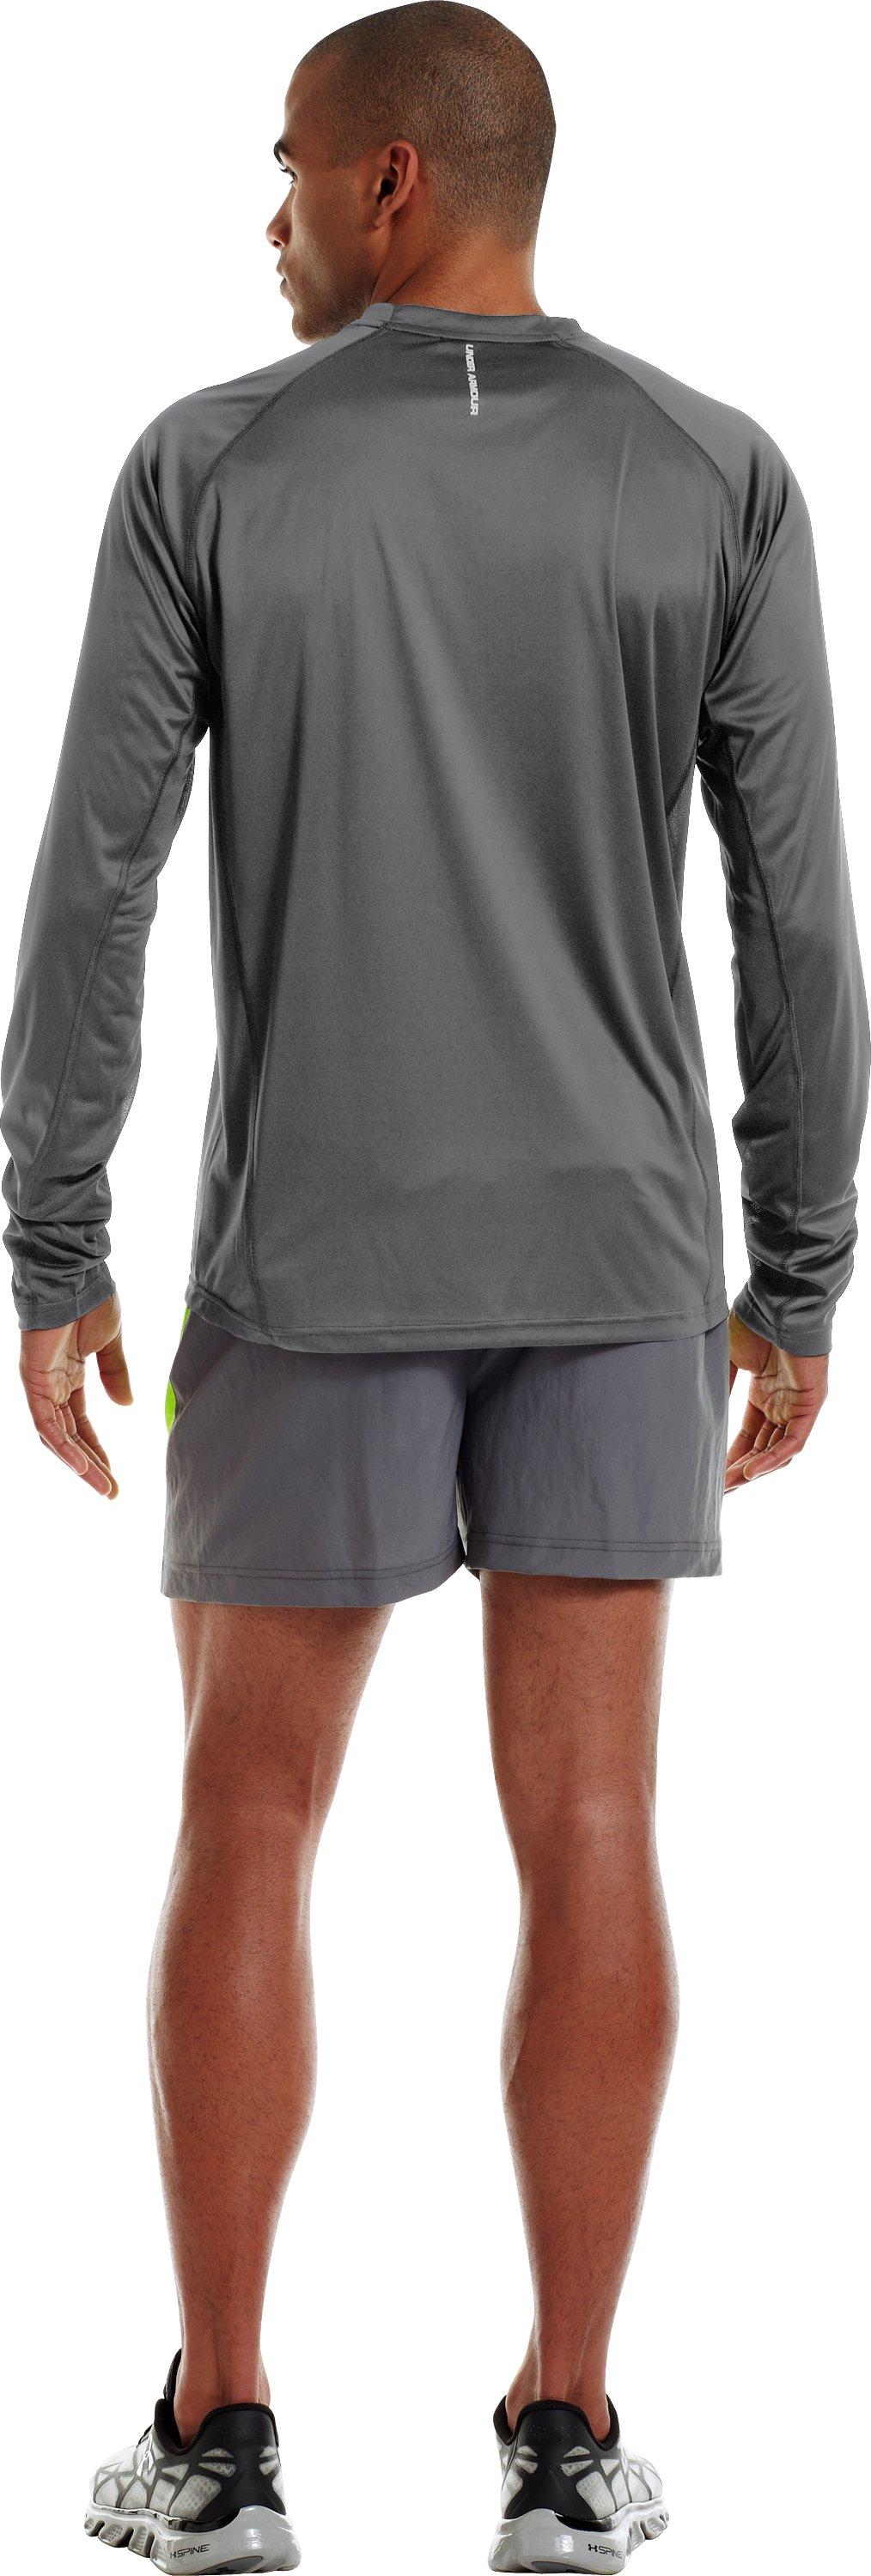 Men's HeatGear® Flyweight Run Long Sleeve, Graphite, Back